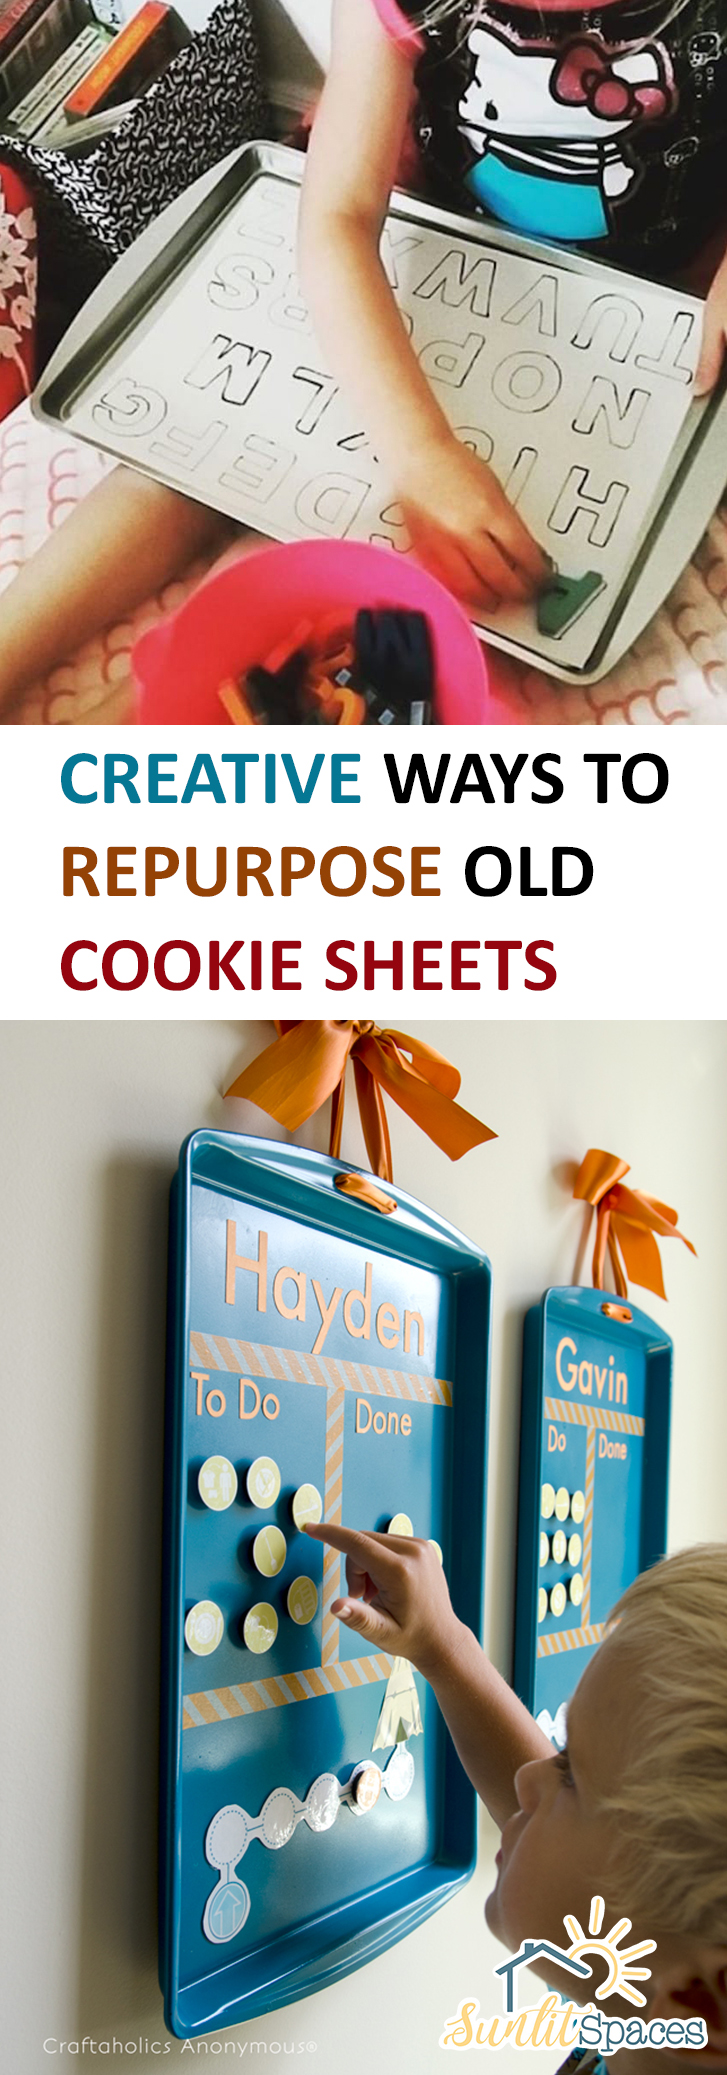 Creative Ways to Repurpose Old Cookie Sheets| Cookie Sheets, Cookie Sheet Uses, How to Use Cookie Sheets, Repurpose Cookie Sheets, How to Repurpose Cookie Sheets, Popular Pin #CookieSheets #RepurposeProjects